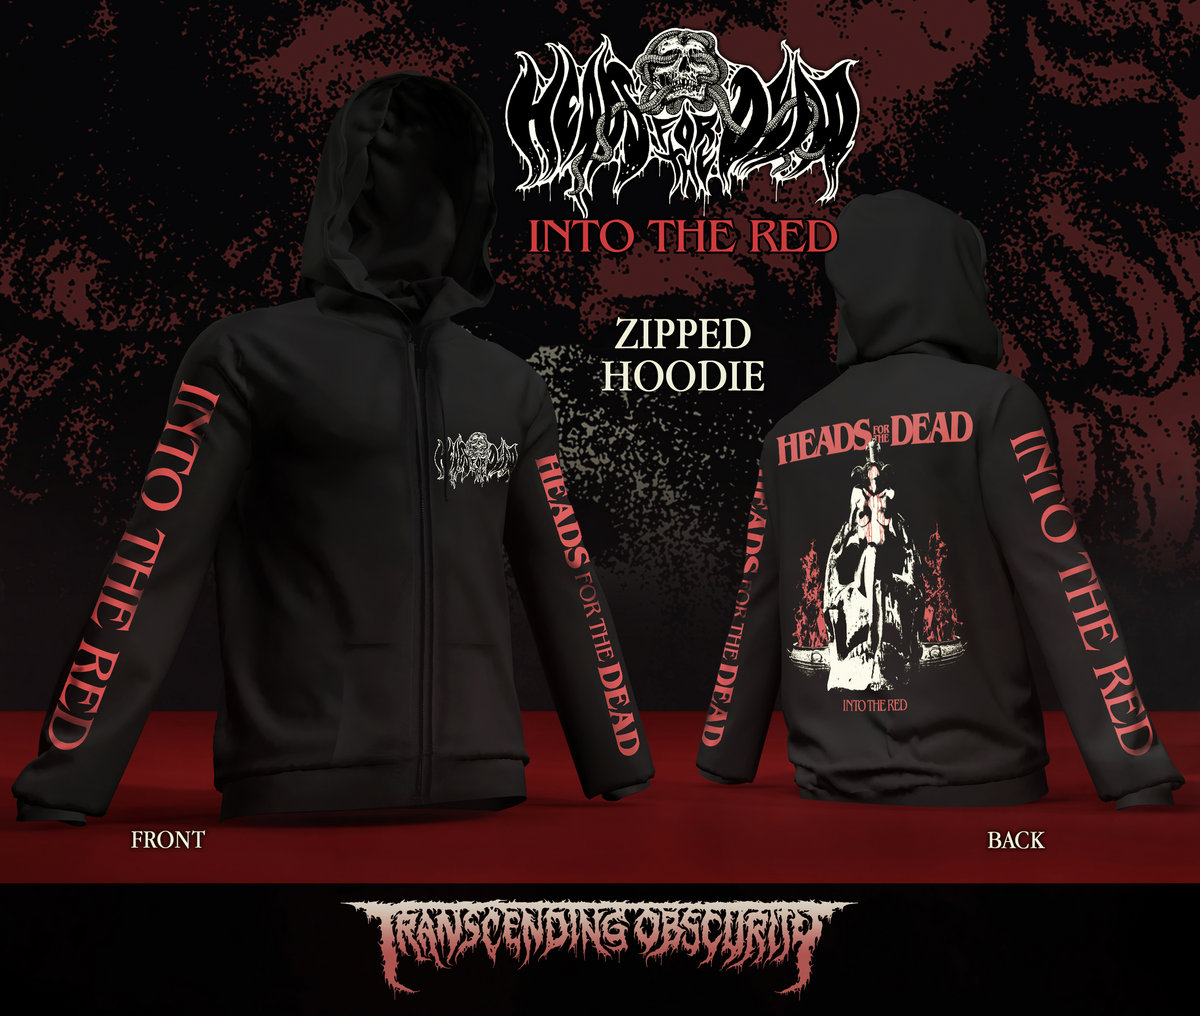 Heads For The Dead - Into The Dead Album Artwork Zipped Hoodie (Limited to 30 nos.)